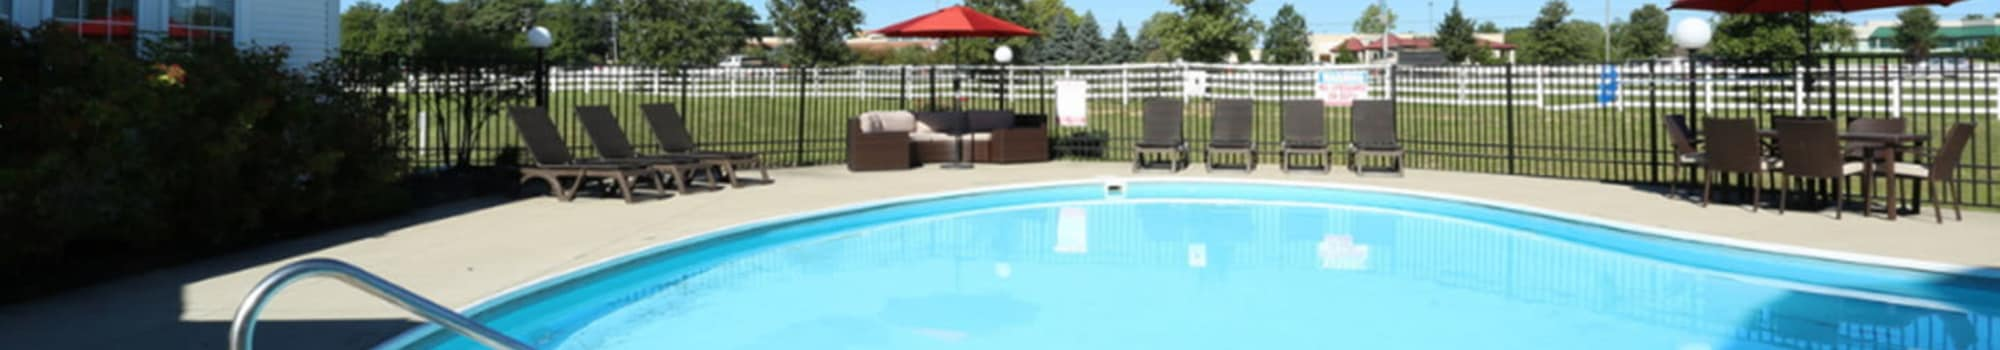 Schedule a tour at Gateway Lakes Apartments in Grove City, Ohio